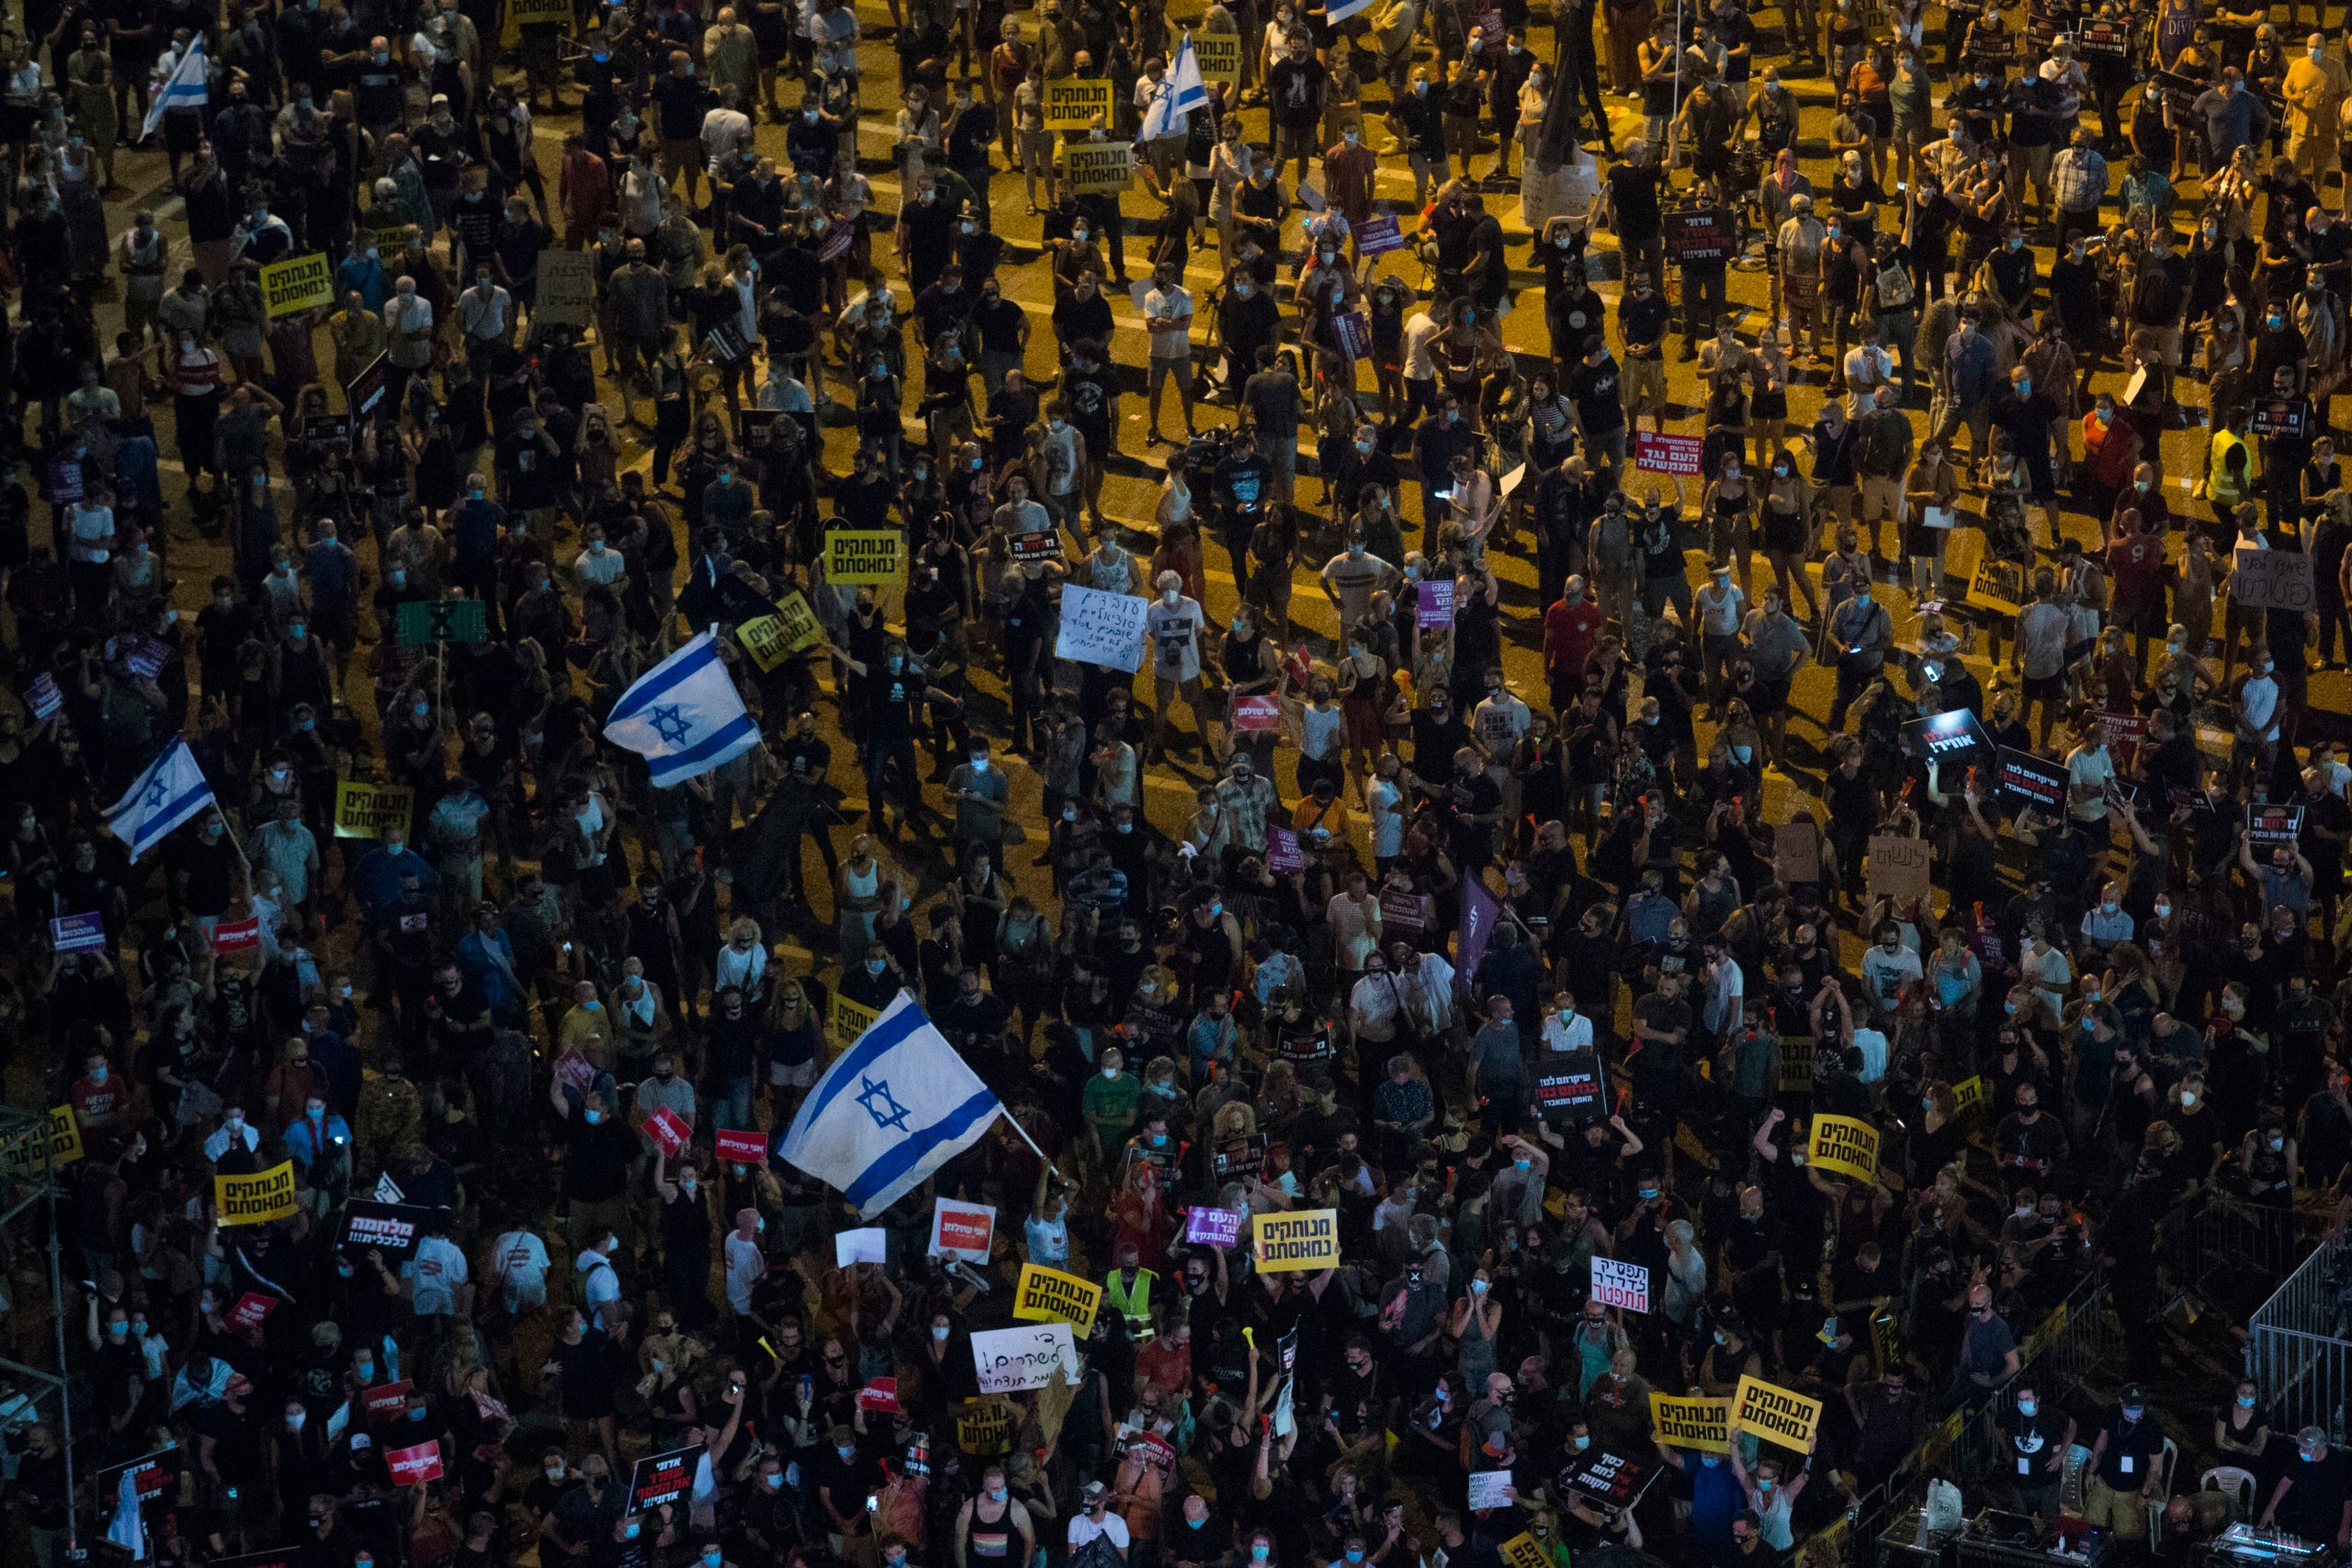 Protests Over Economy Continue As Israel Sees Spike In Coronavirus Cases